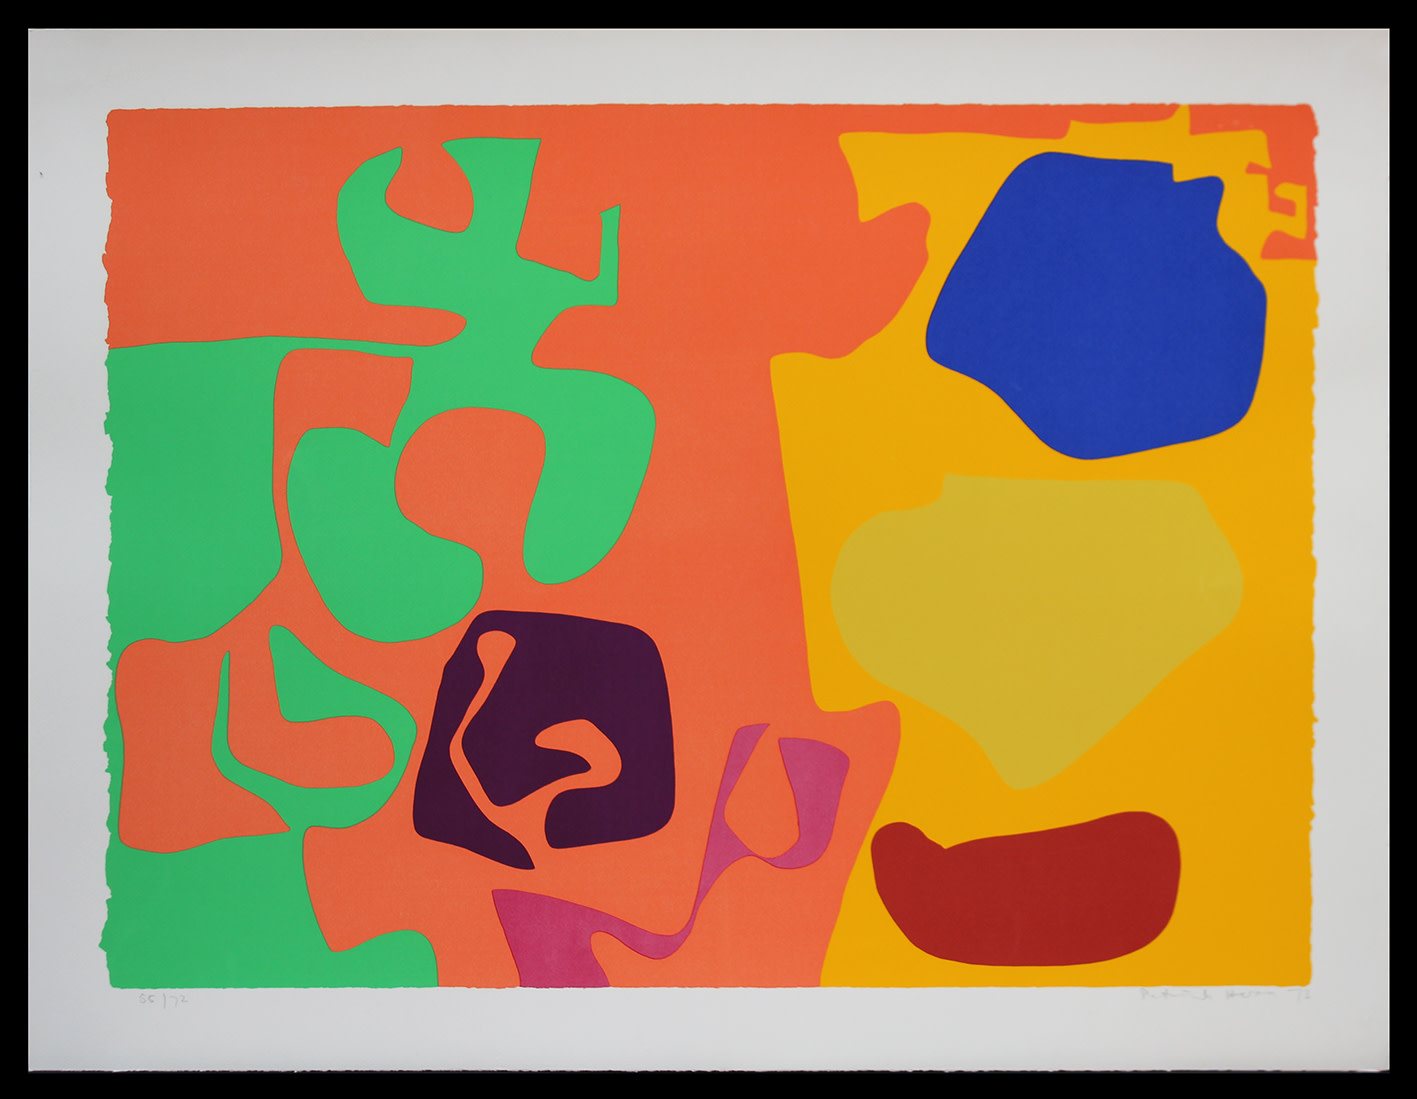 <span class=&#34;link fancybox-details-link&#34;><a href=&#34;/artists/93-patrick-heron-cbe/works/4478-patrick-heron-cbe-january-1973-10-1973/&#34;>View Detail Page</a></span><div class=&#34;artist&#34;><strong>Patrick Heron CBE</strong></div> 1920 – 1999 <div class=&#34;title&#34;><em>January 1973 : 10</em>, 1973</div> <div class=&#34;signed_and_dated&#34;>signed, dated and numbered in pencil</div> <div class=&#34;medium&#34;>silkscreen print in colours on wove paper, with full margins</div> <div class=&#34;dimensions&#34;>Image size: 58.8 x 81.4 cm<br /> 23 1/8 x 32 1/8 in<br /> <br /> Sheet size: 69.5 x 91.5 cm<br /> 27 3/8 x 36 1/8 in<br /> <br /> </div> <div class=&#34;edition_details&#34;>Edition 55 of 72</div><div class=&#34;copyright_line&#34;>© The Estate of Patrick Heron</div>